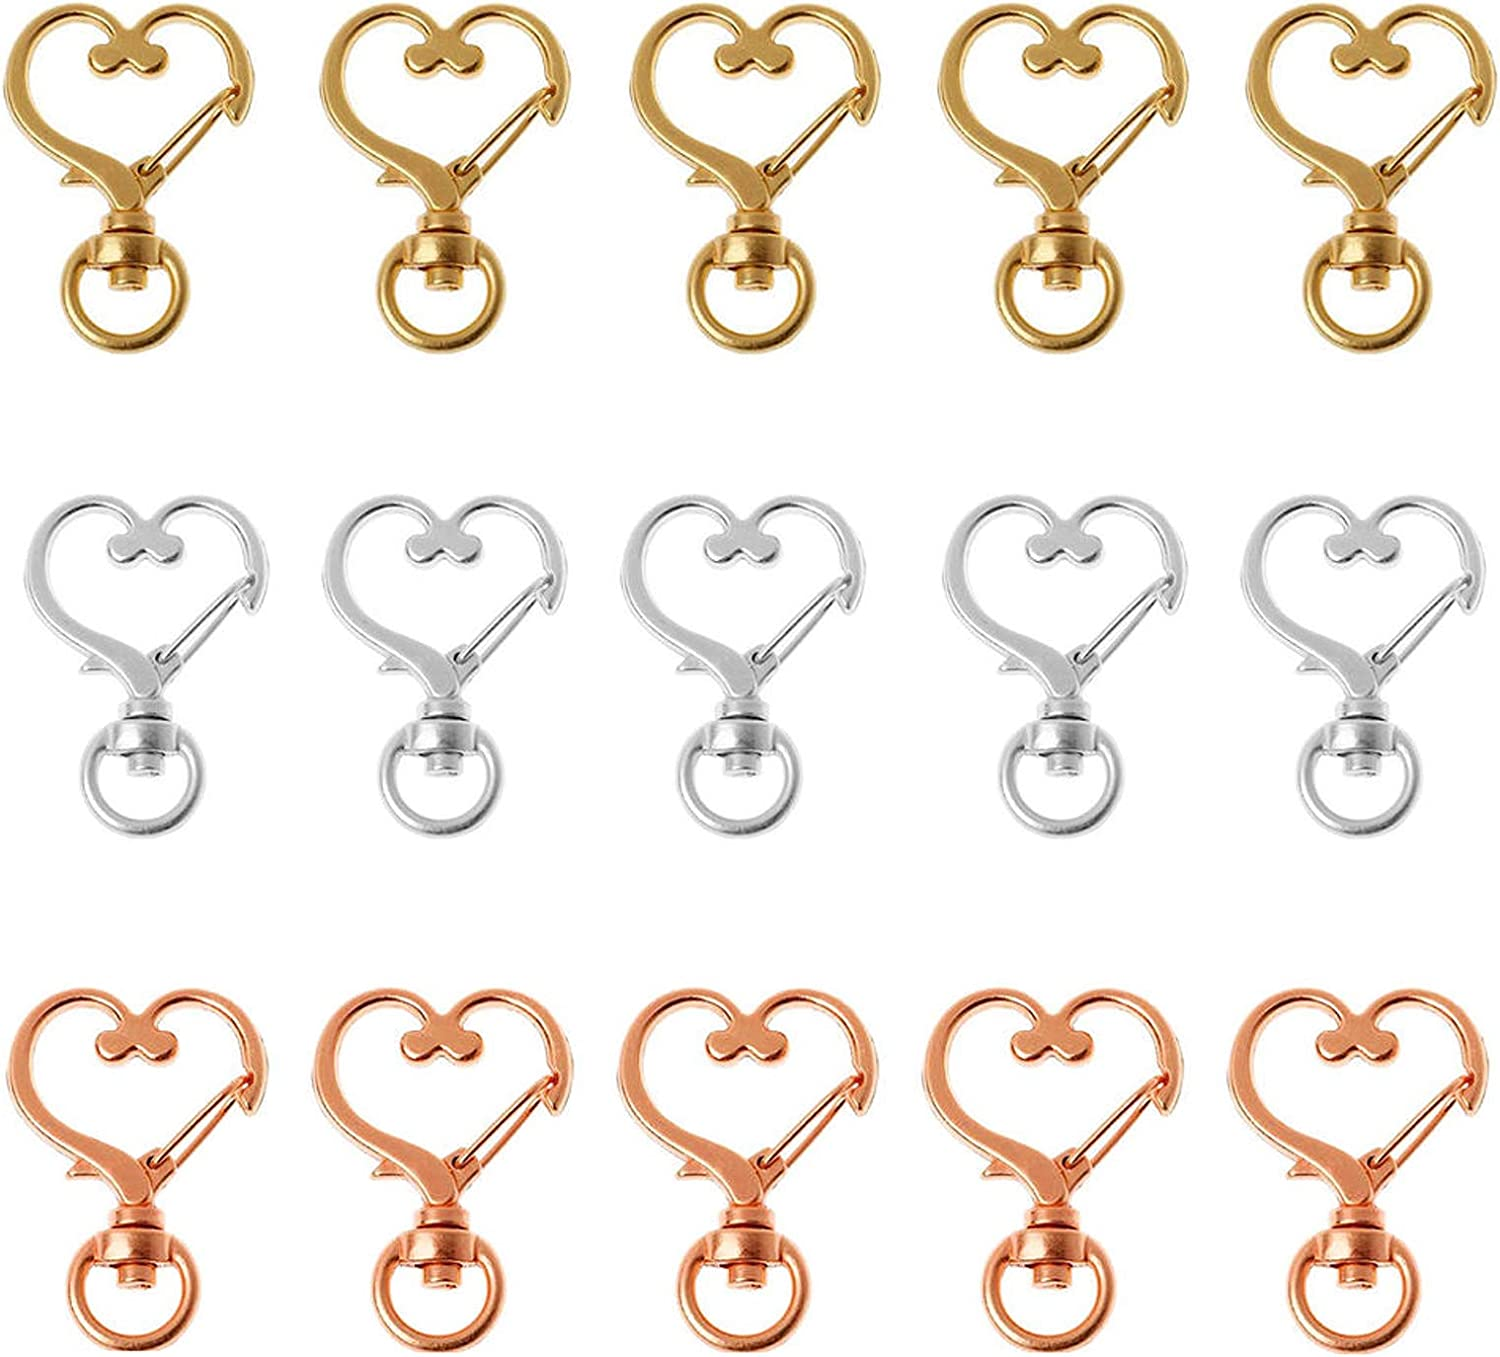 IETONE 30 Pieces Metal Year-end gift Swivel Lobster Clasp Heart Claw Popular Shape Sna